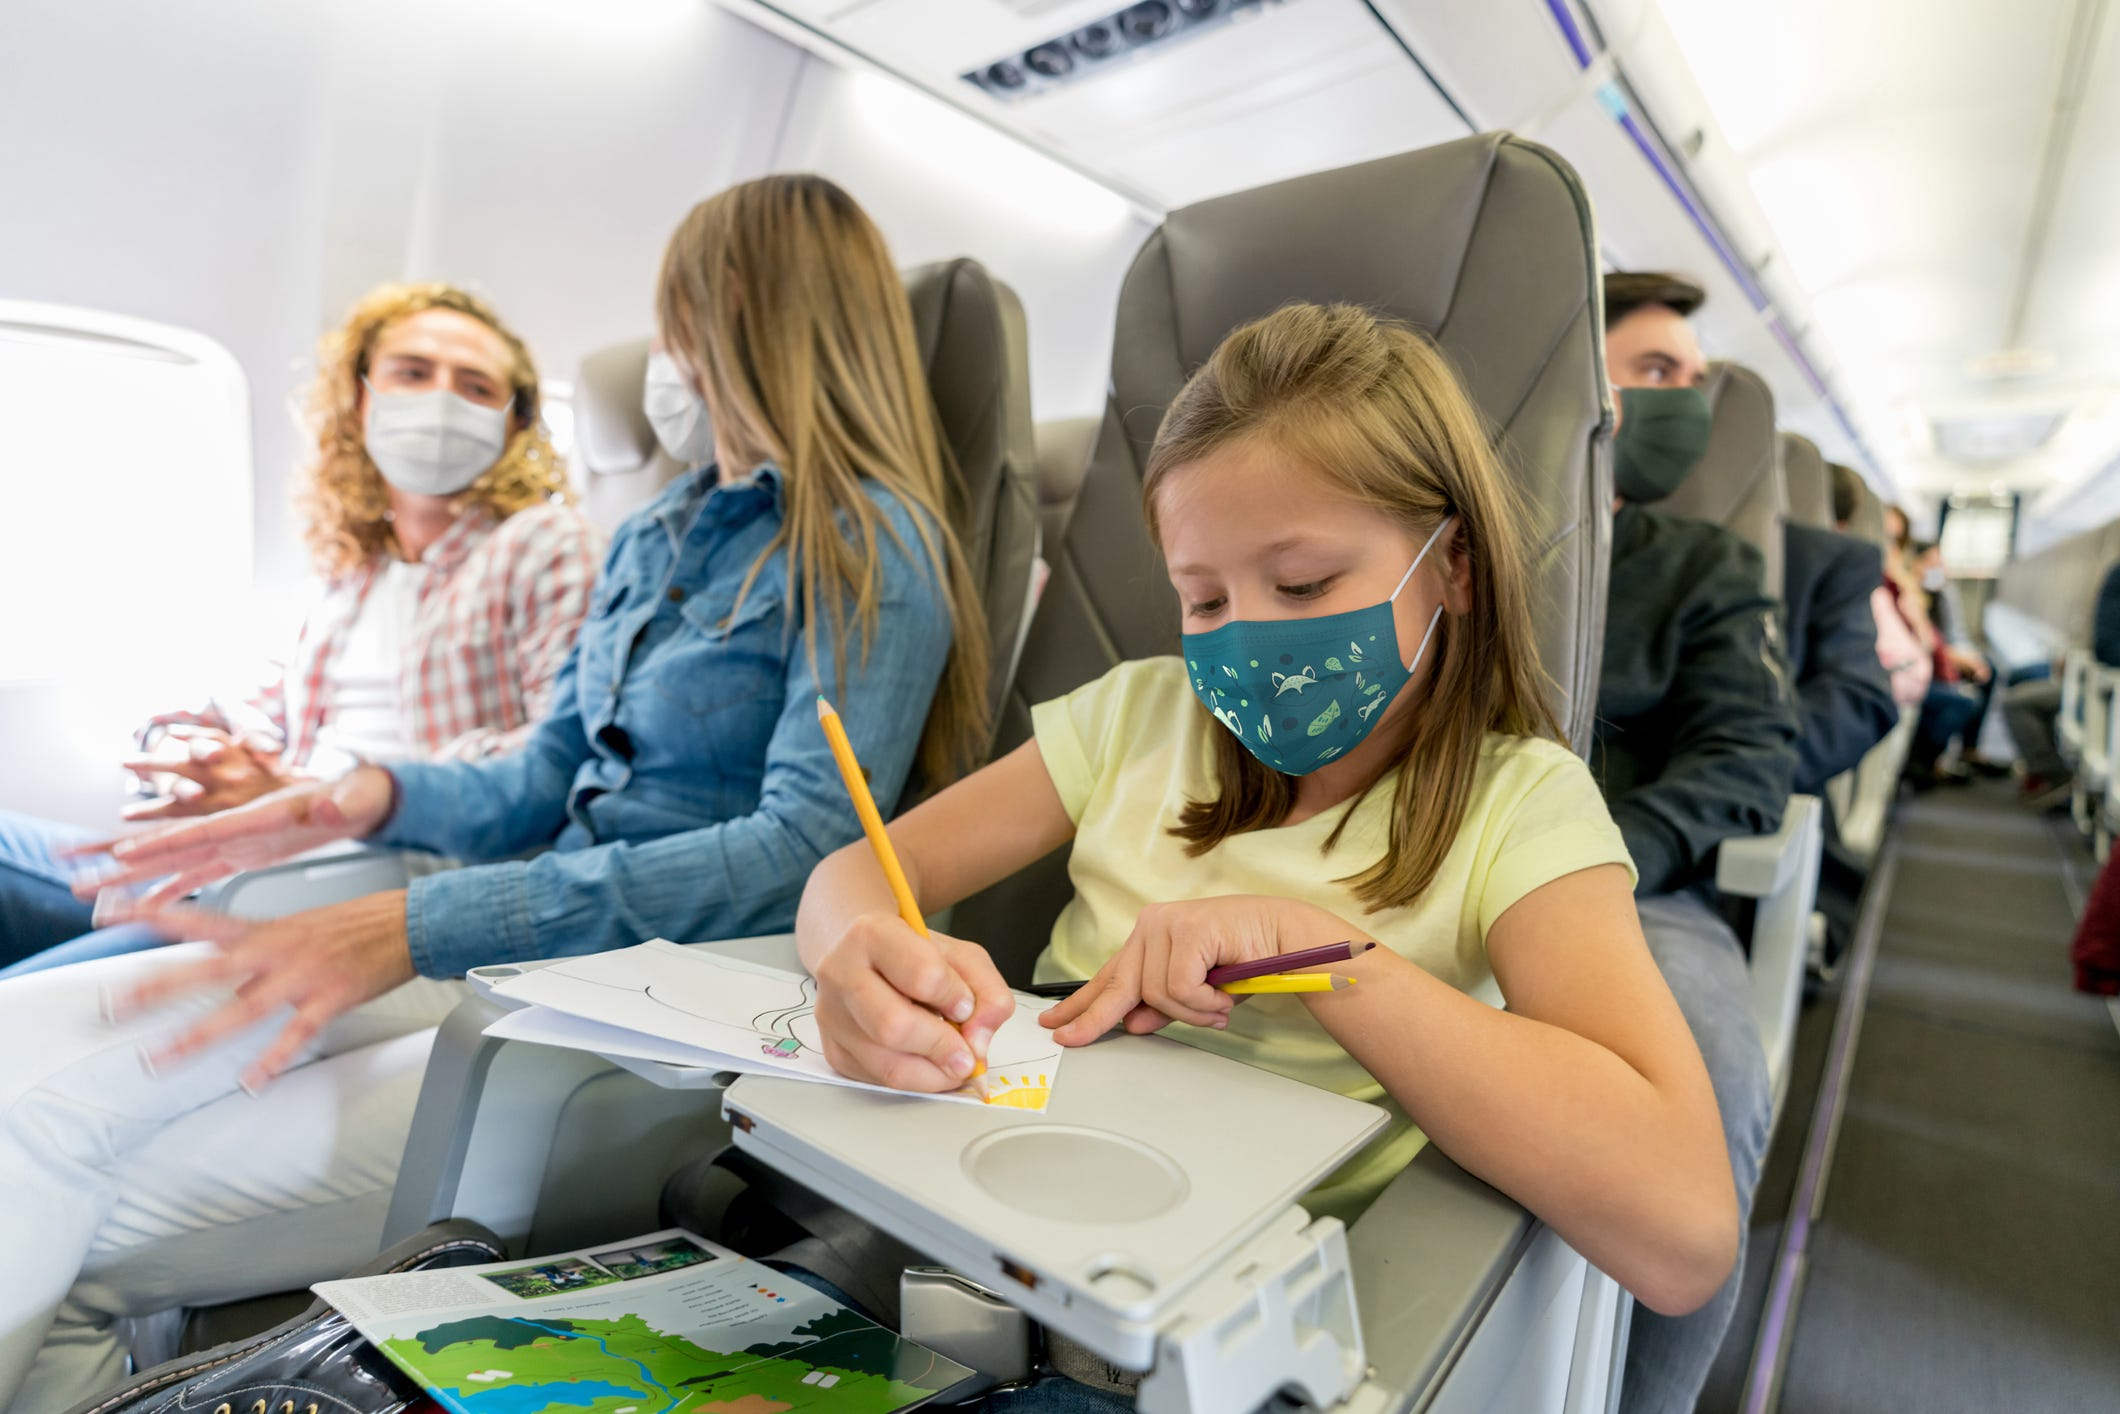 President Biden signs order mandating masks on planes: Will it reduce number of in-flight scofflaws?